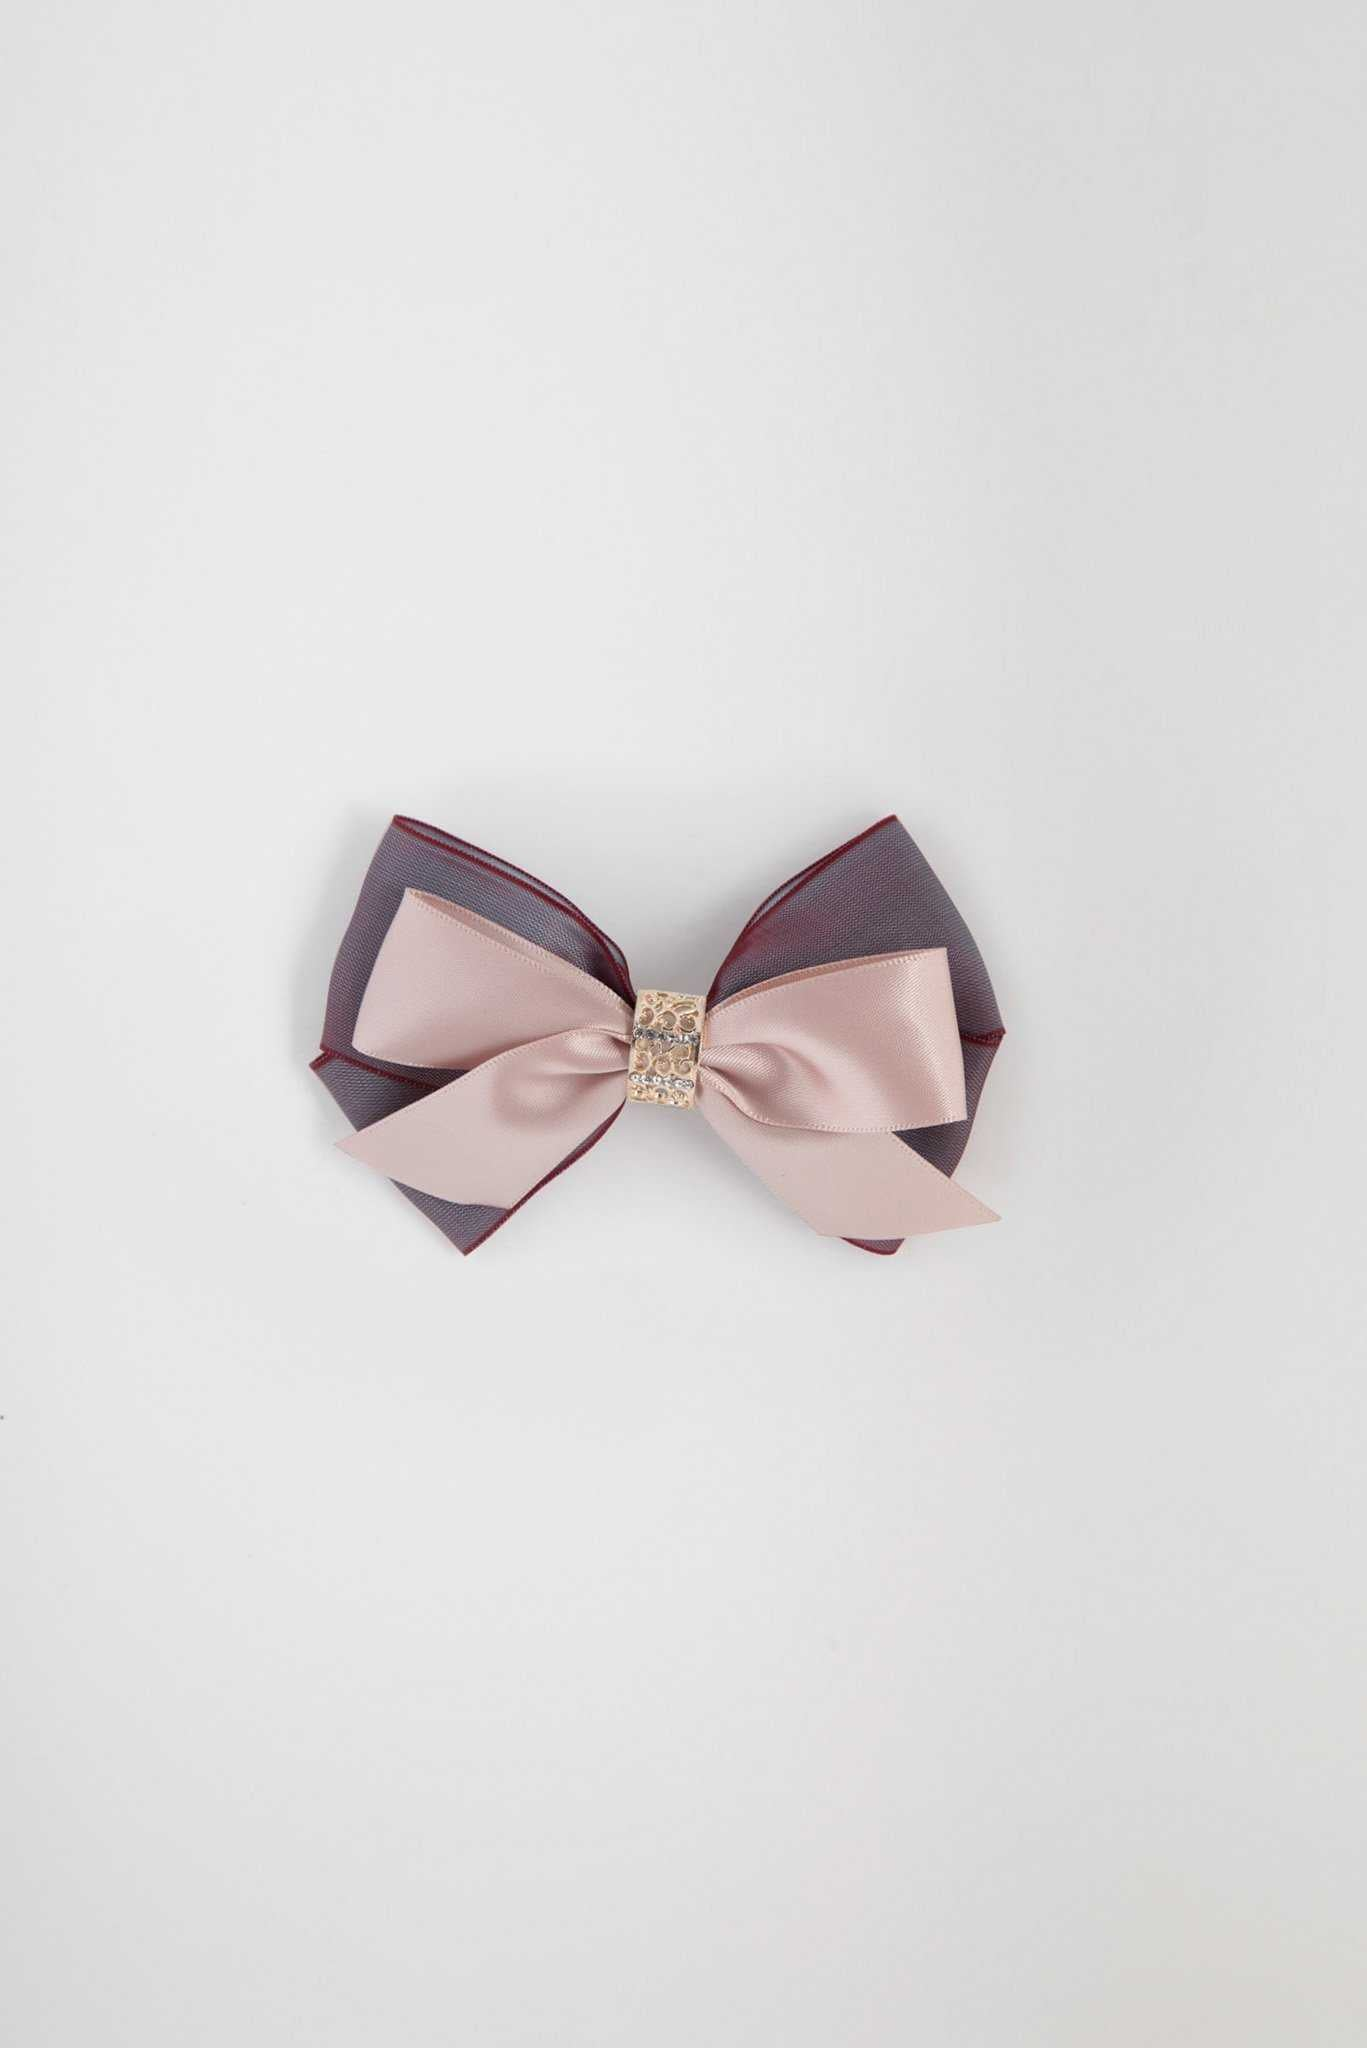 Hair Clip - Pink Bow | Raw Orange